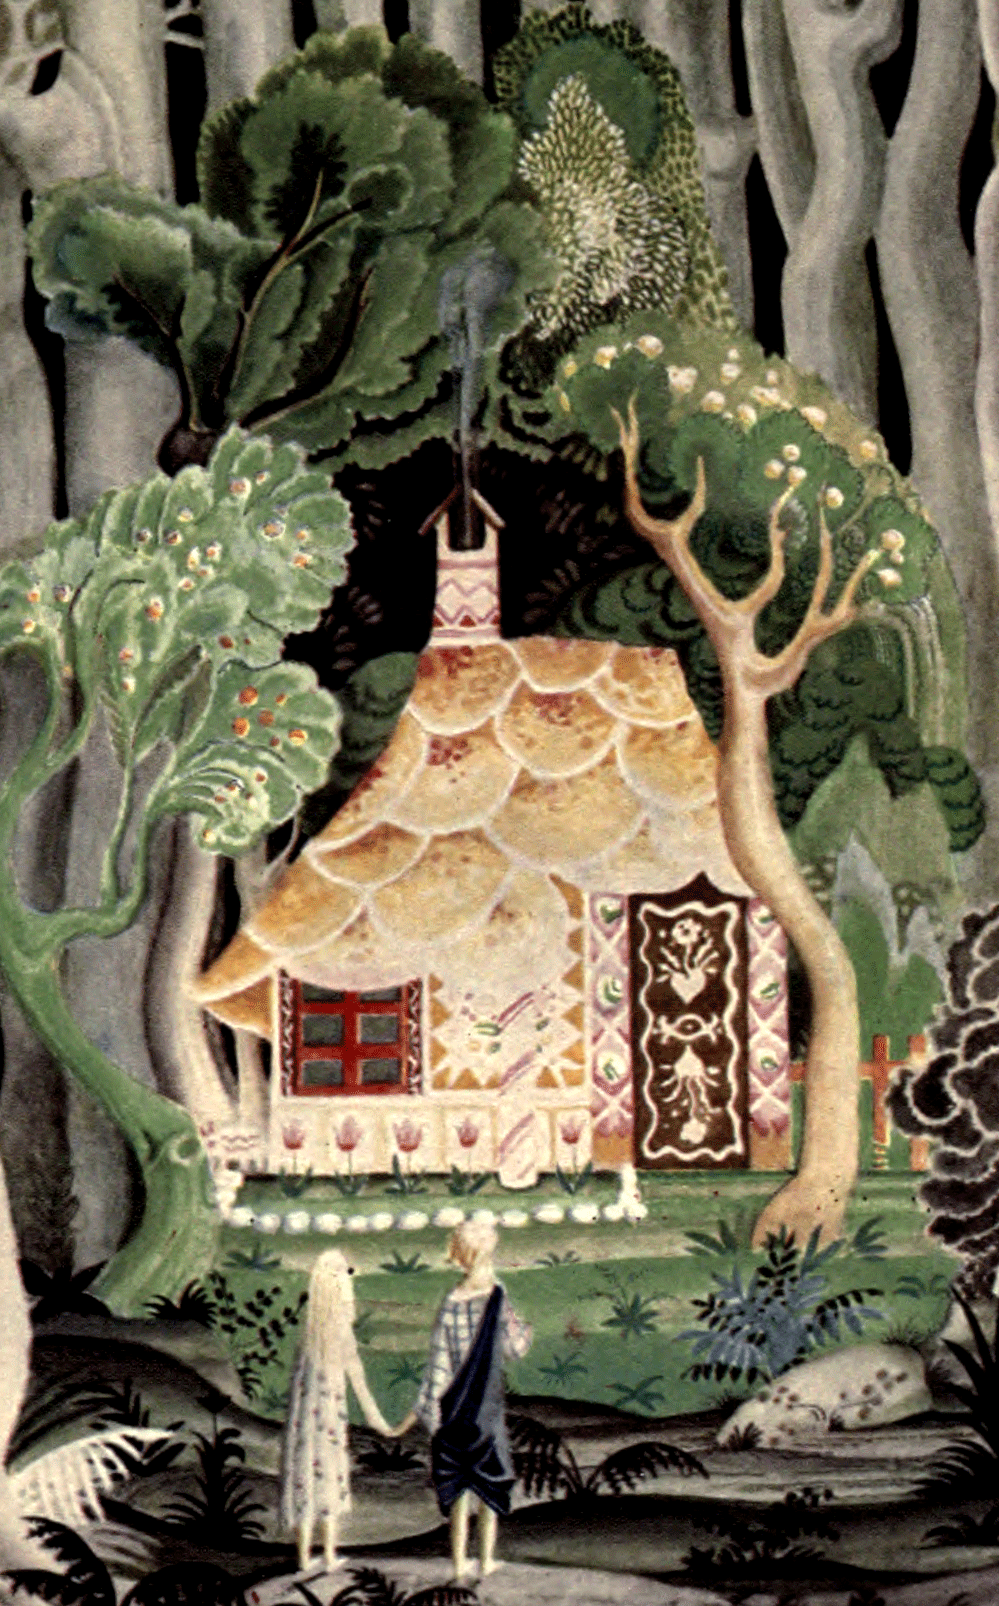 Hansel and Gretel and Other Brothers Grimm Stories – Illustrated by Kay Nielsen